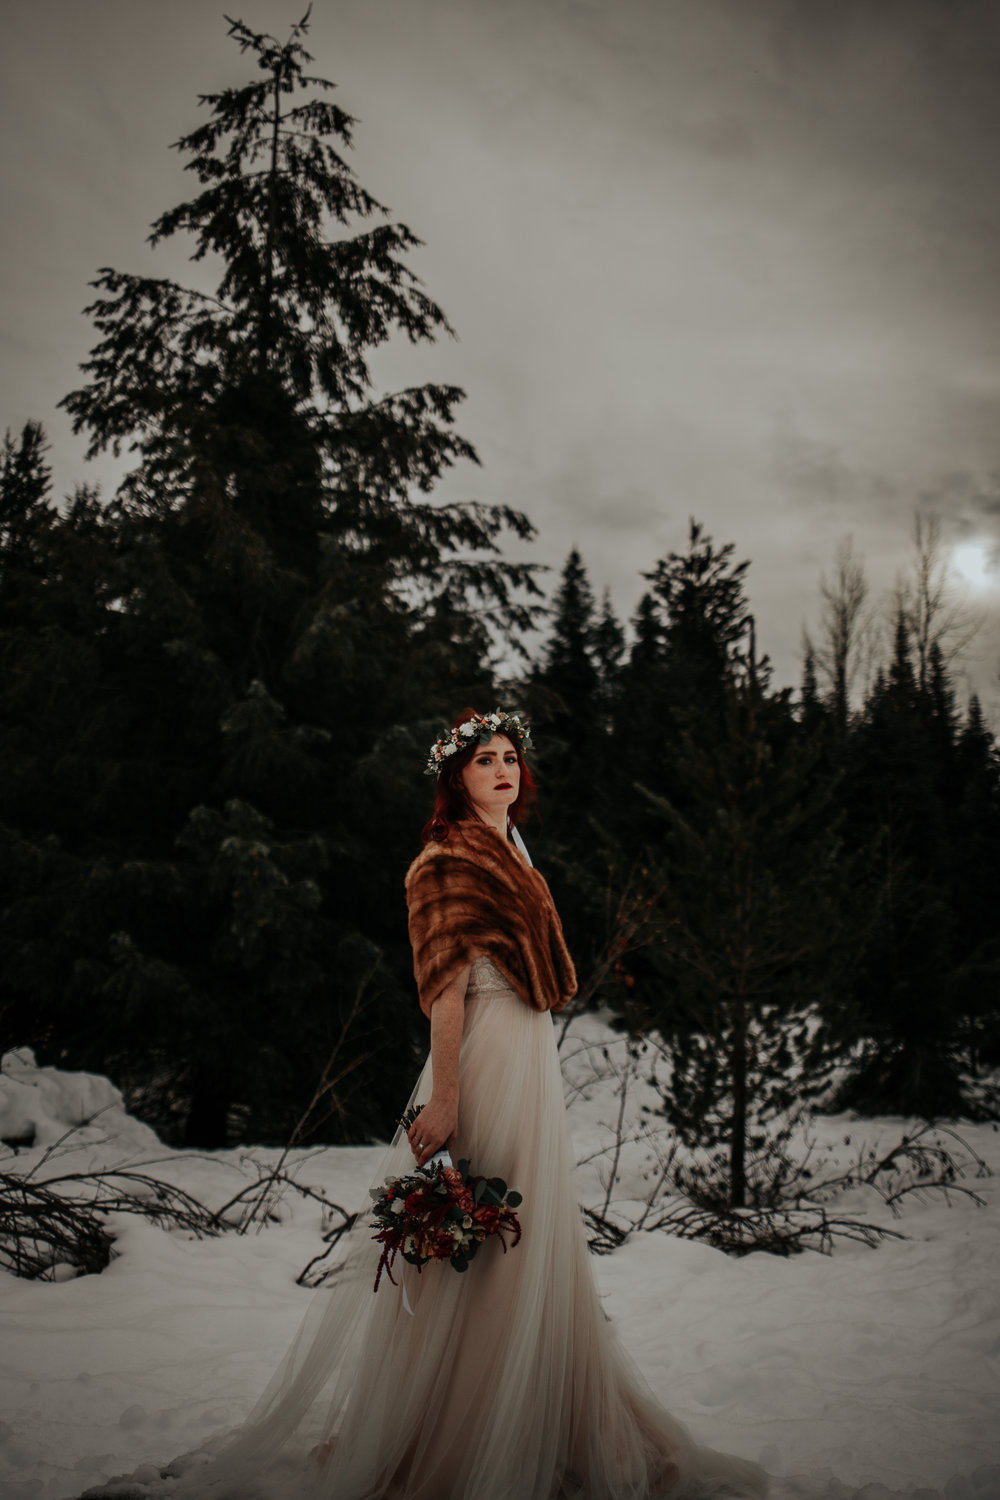 gold-creek-pond-elopement-wedding-megan-gallagher-photography (89 of 195).jpg